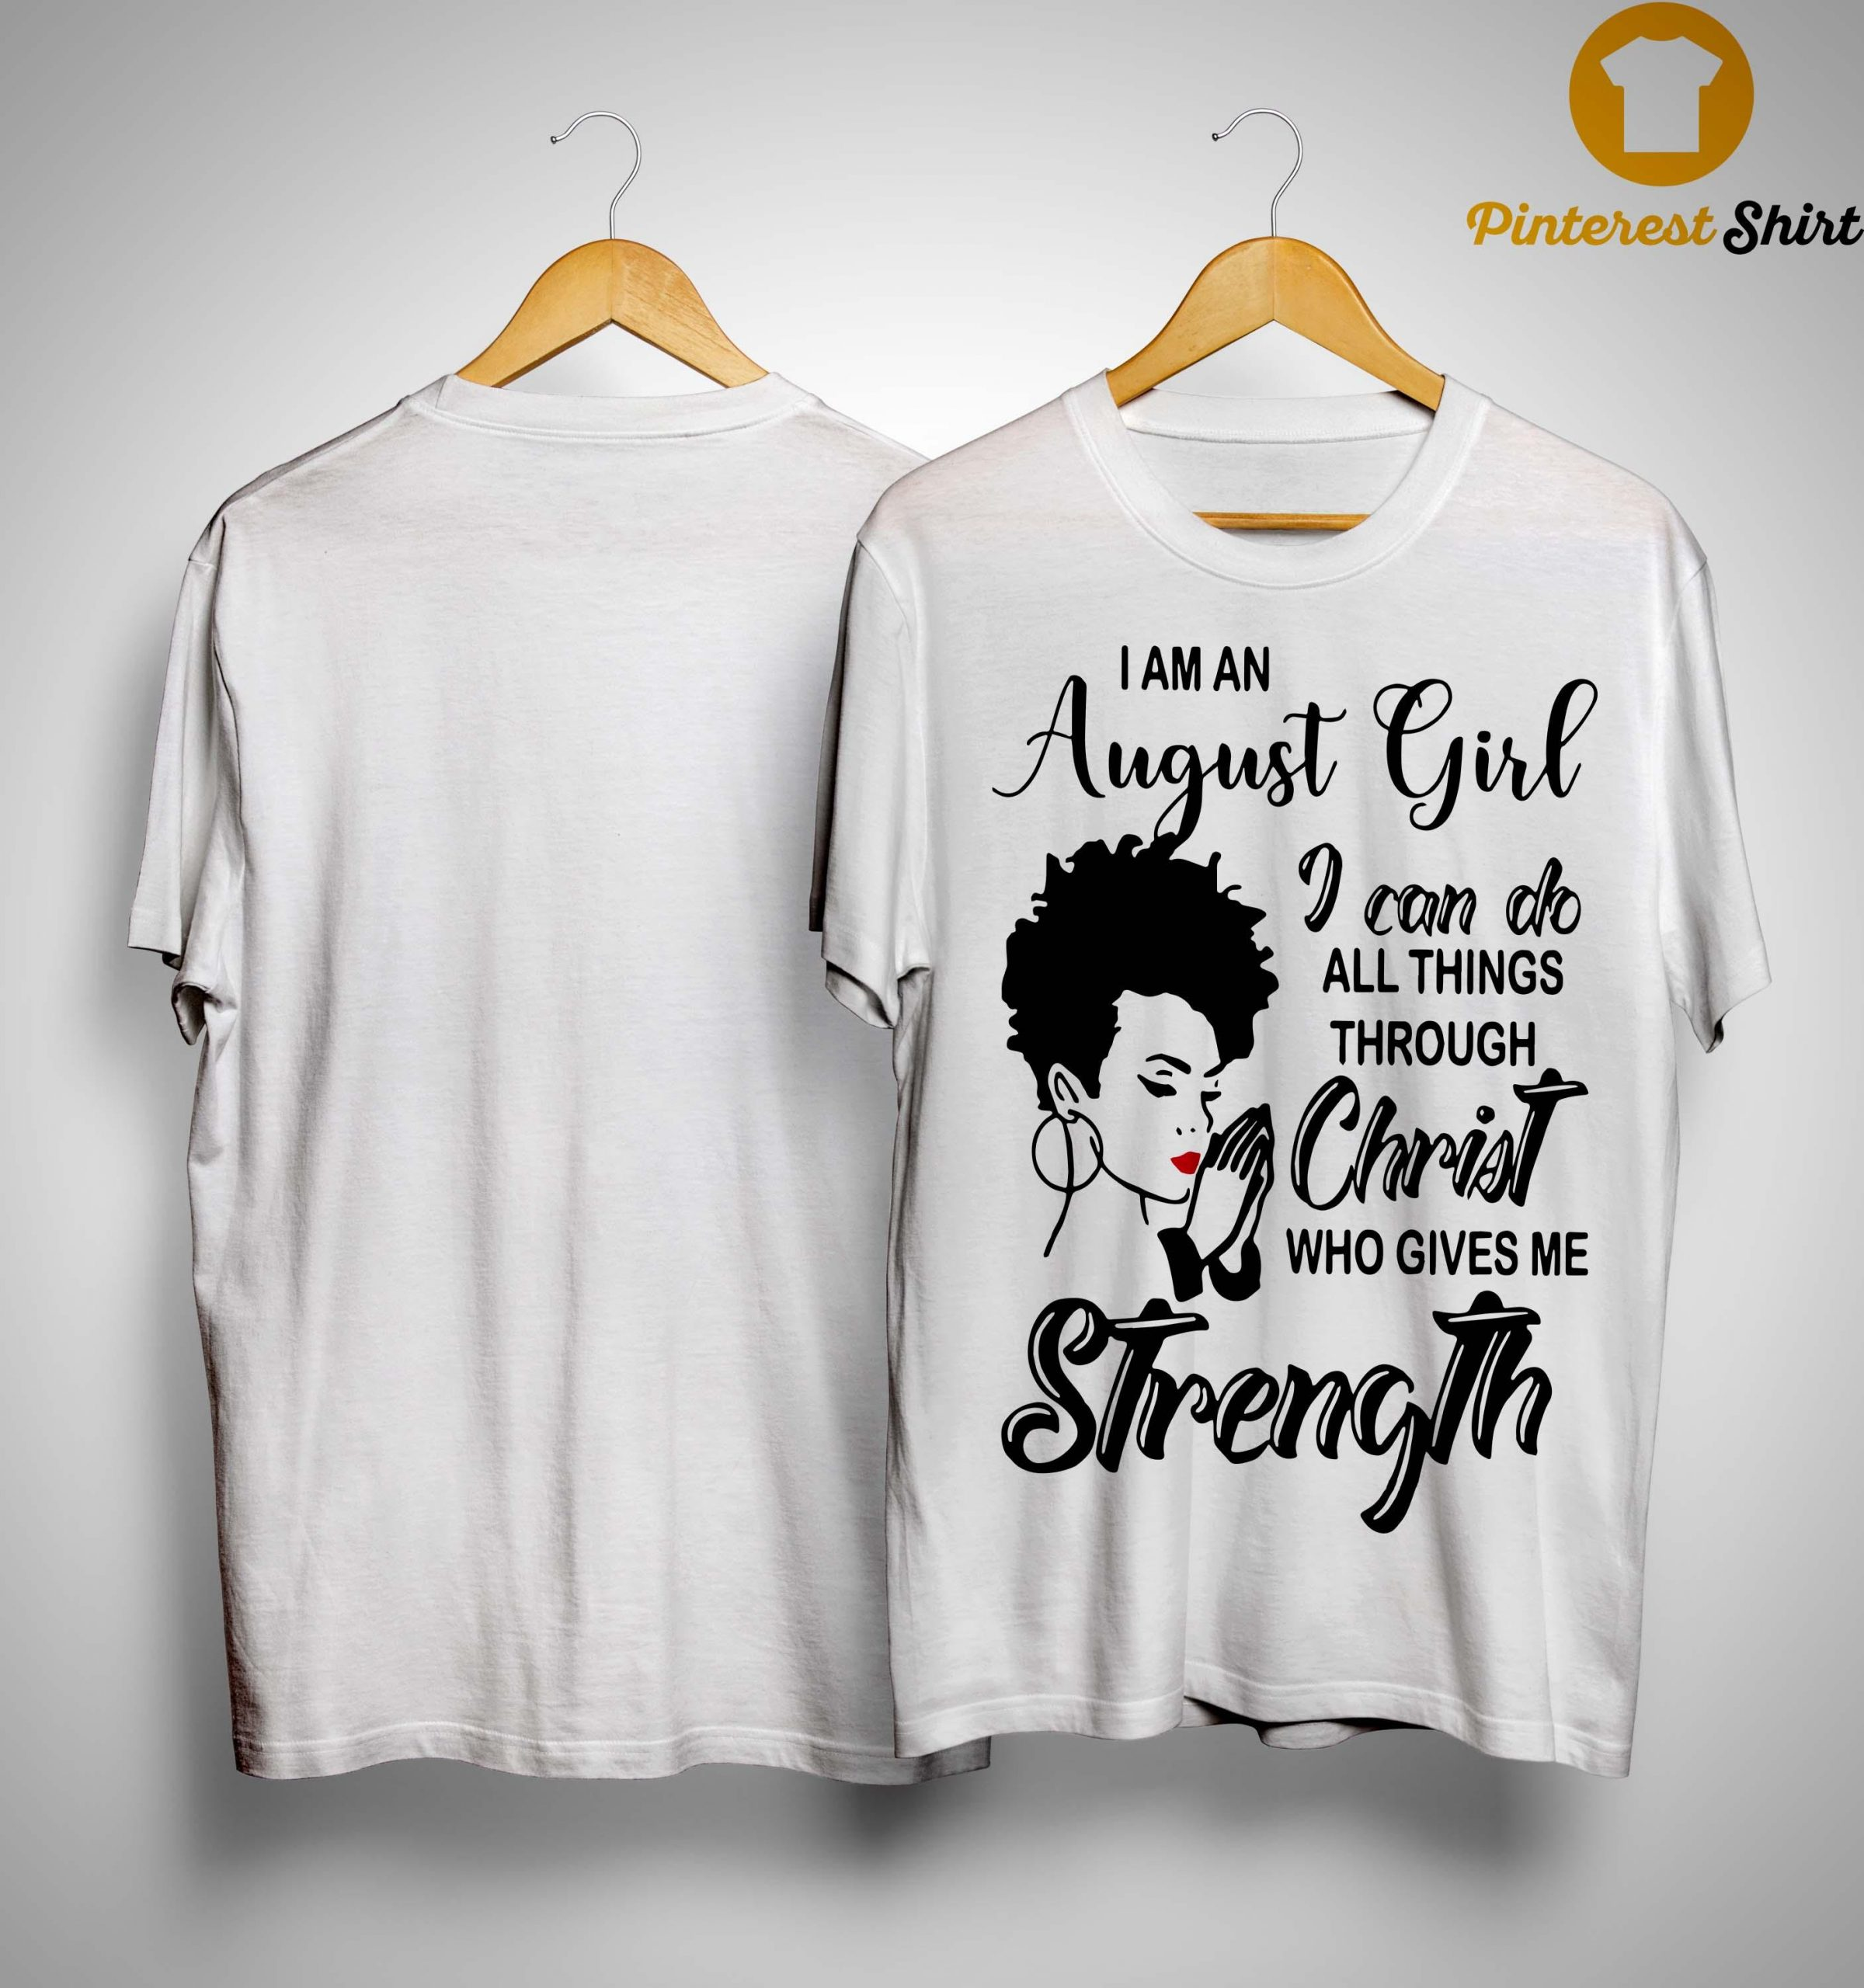 I Am An August Girl I Can Do All Things Through Christ Who Gives Me Strength Shirt